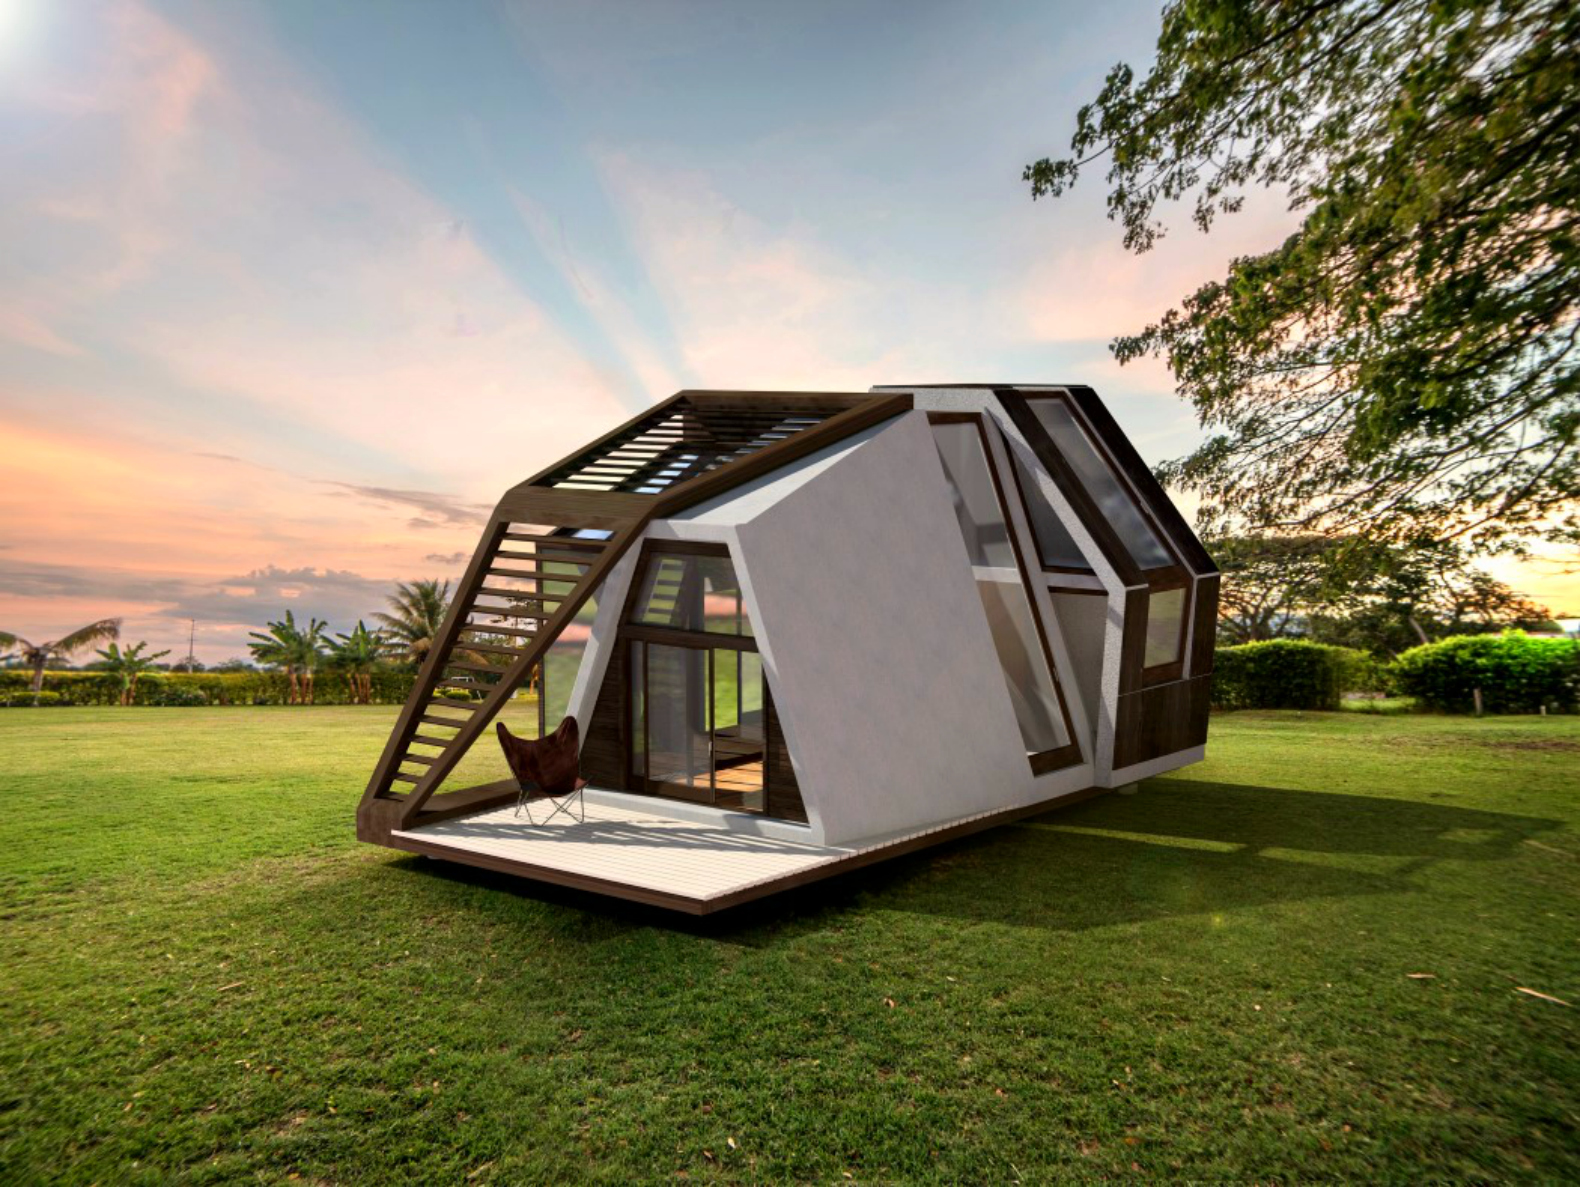 Ready Made Homes : This ready made tiny home can be shipped to any